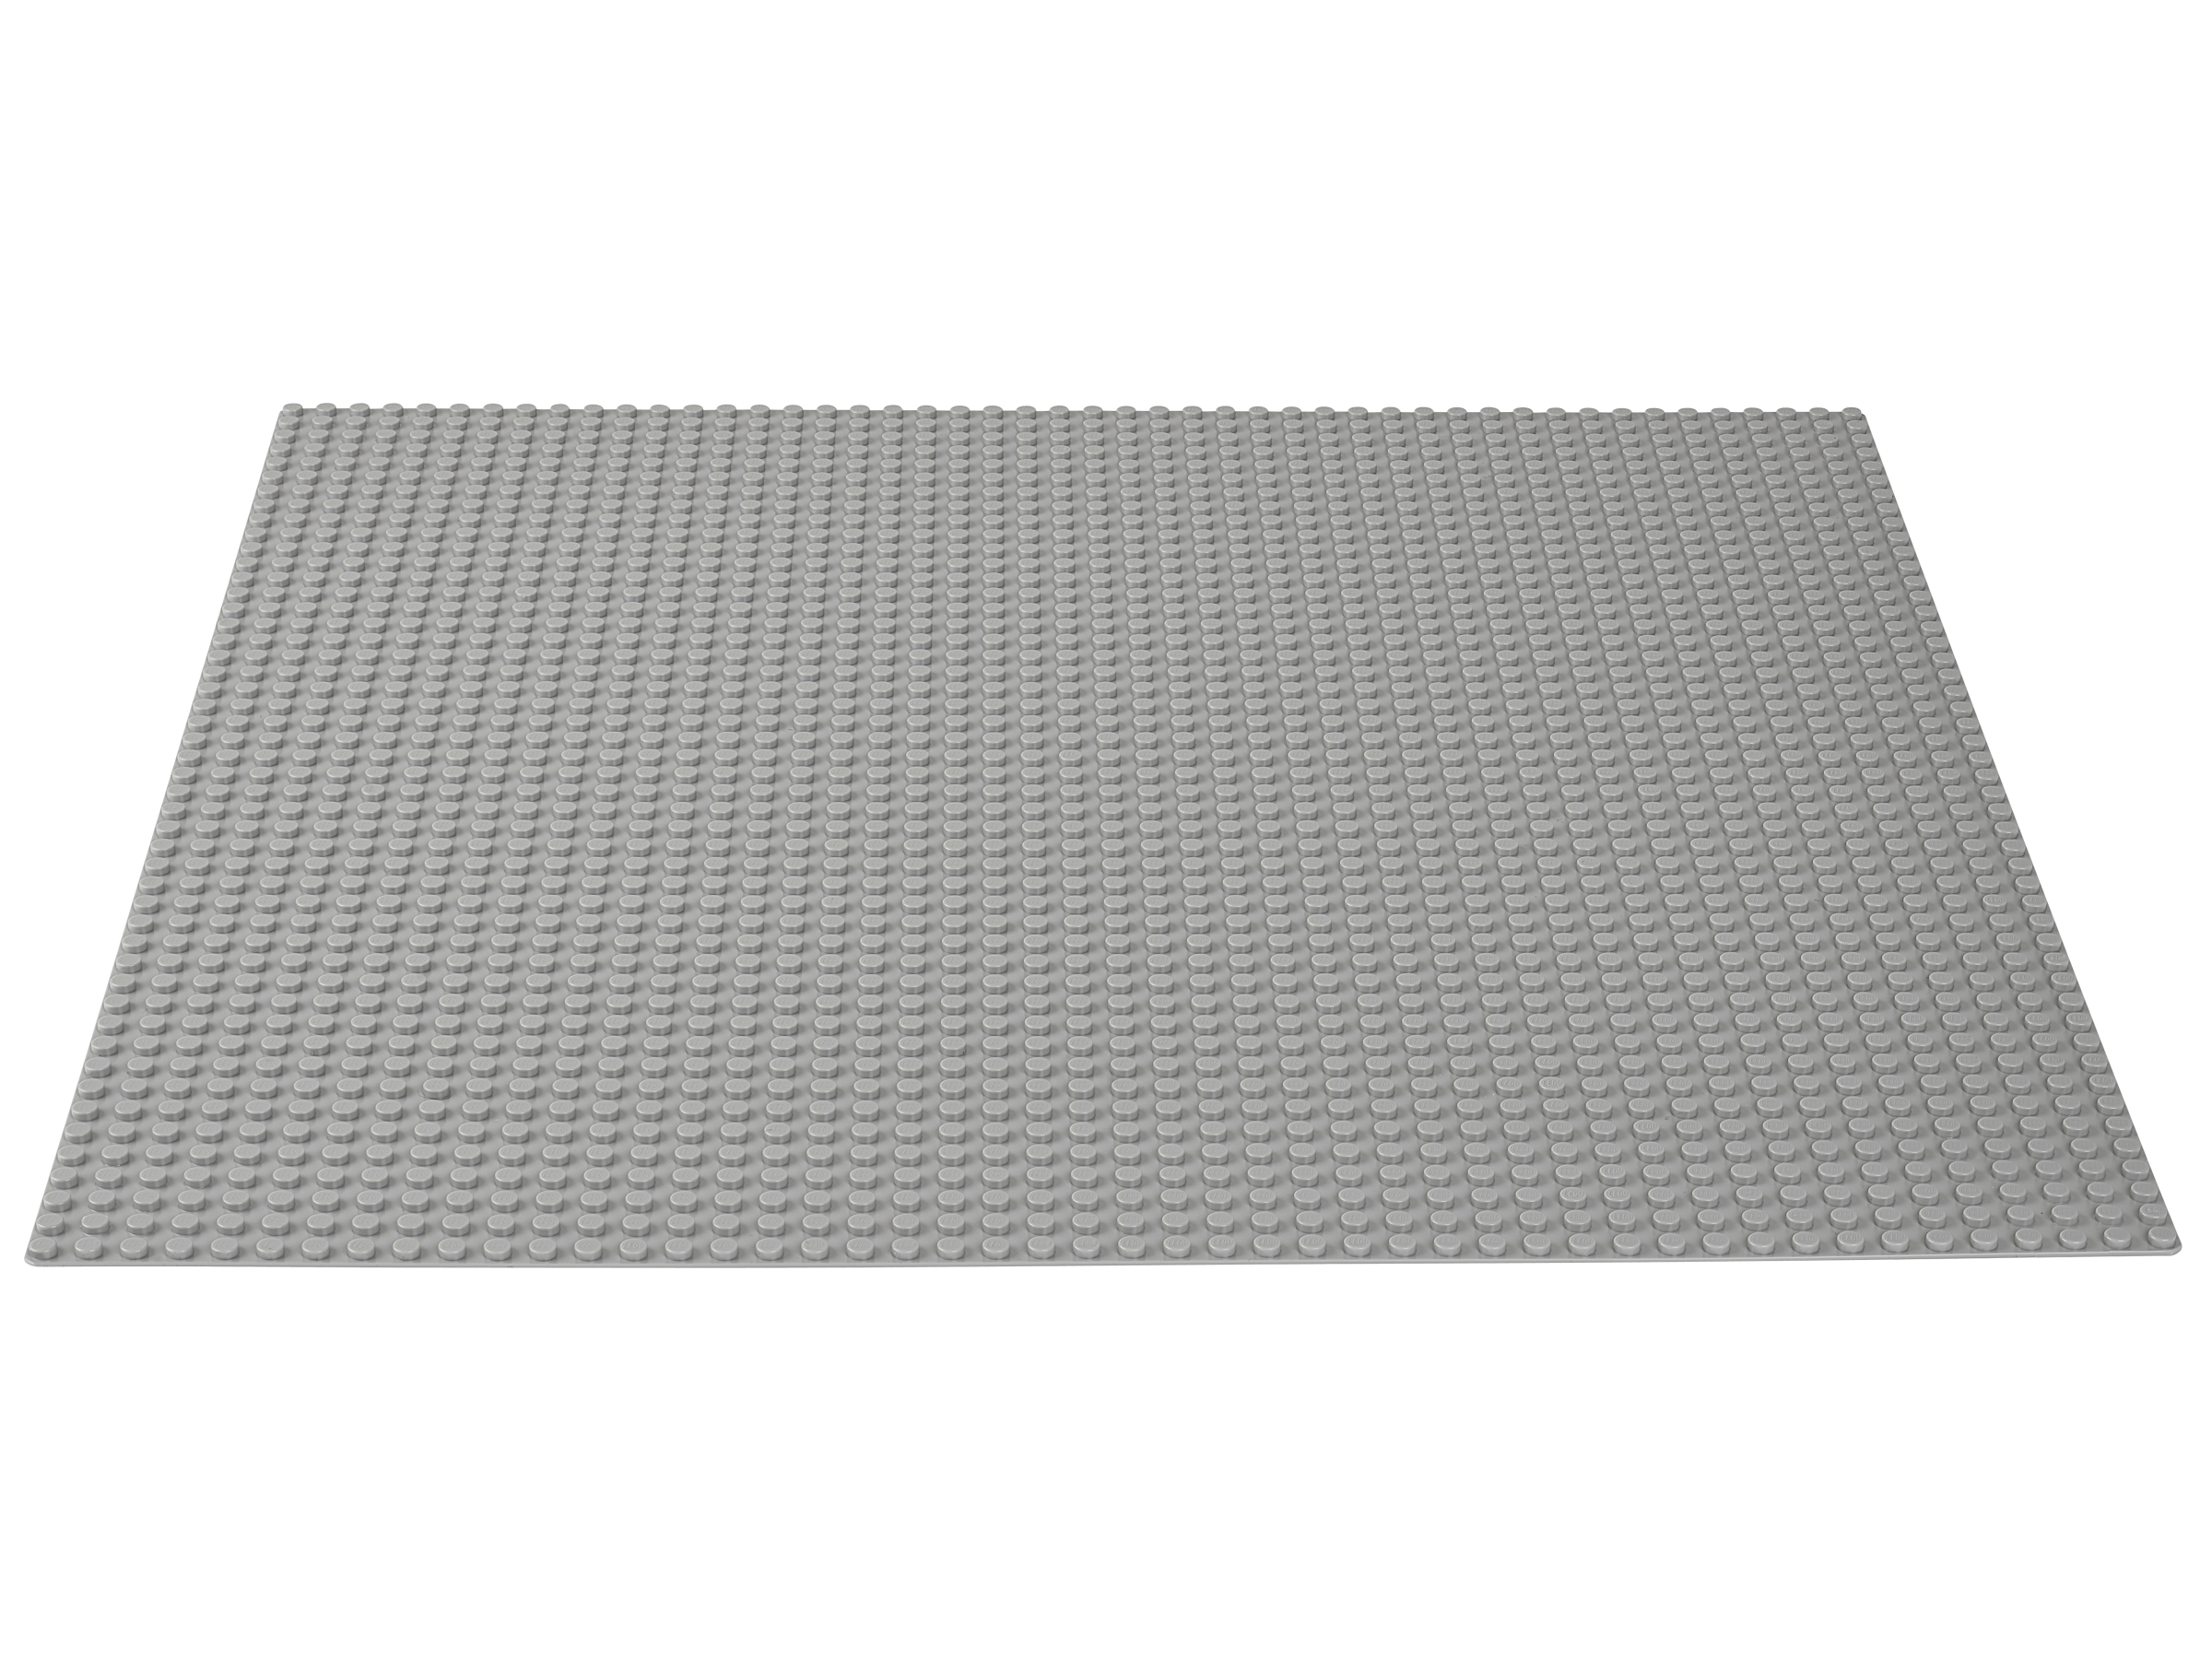 Lego 4 New Dark Bluish Gray Plate 6 x 6 Pieces